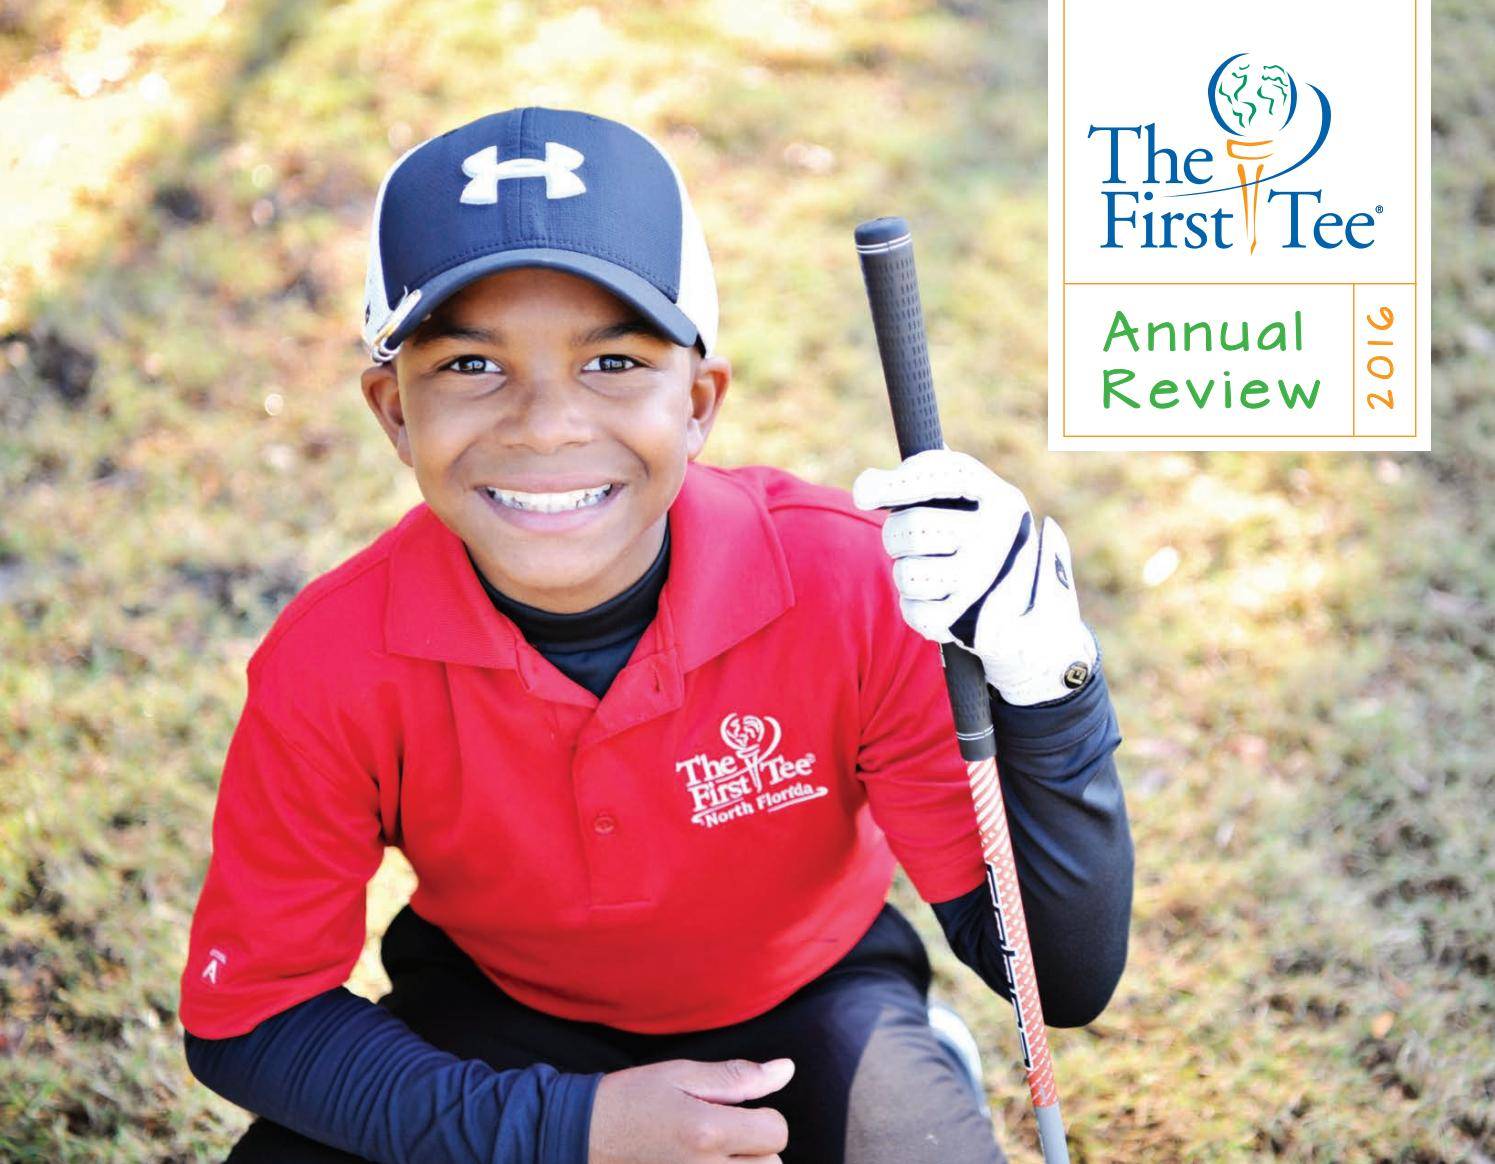 the first tee 2016 annual review by the first tee